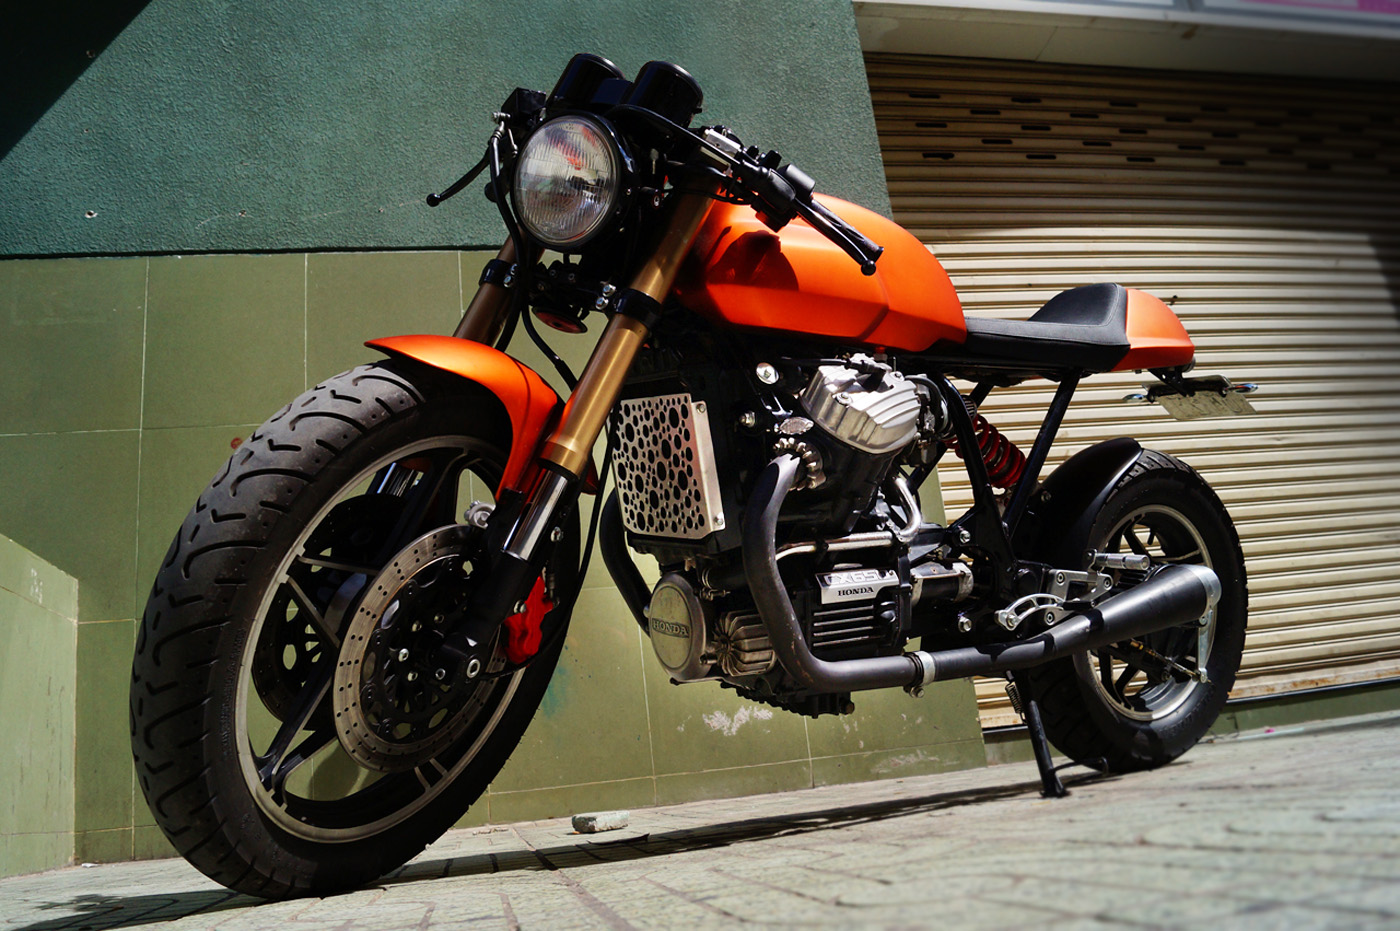 Vietnam S Premiere Cafe Racer Is A Honda With Ducati Looks